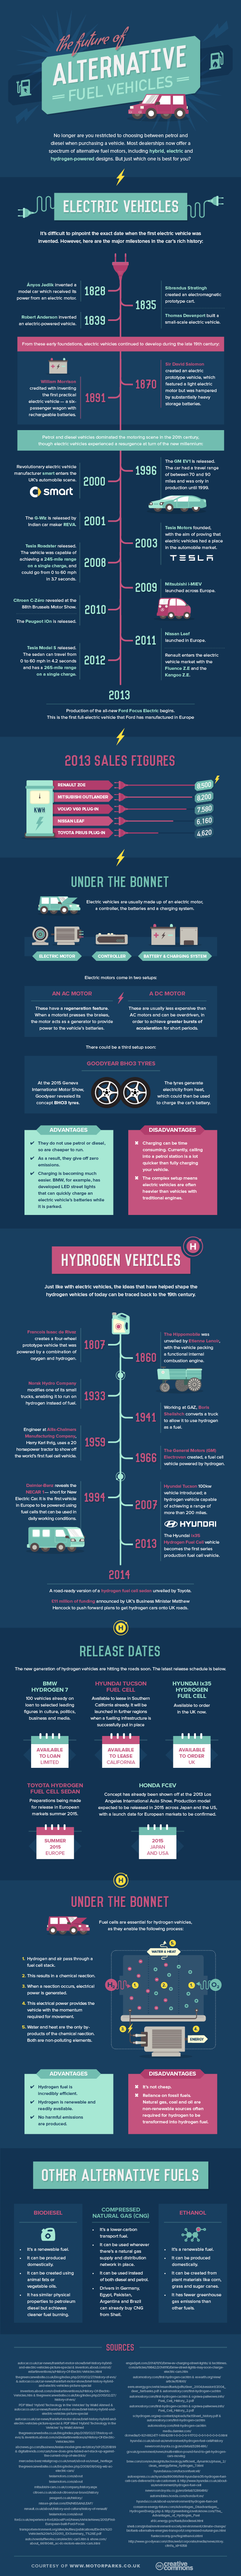 The Future of Alternative Fuel Vehicles